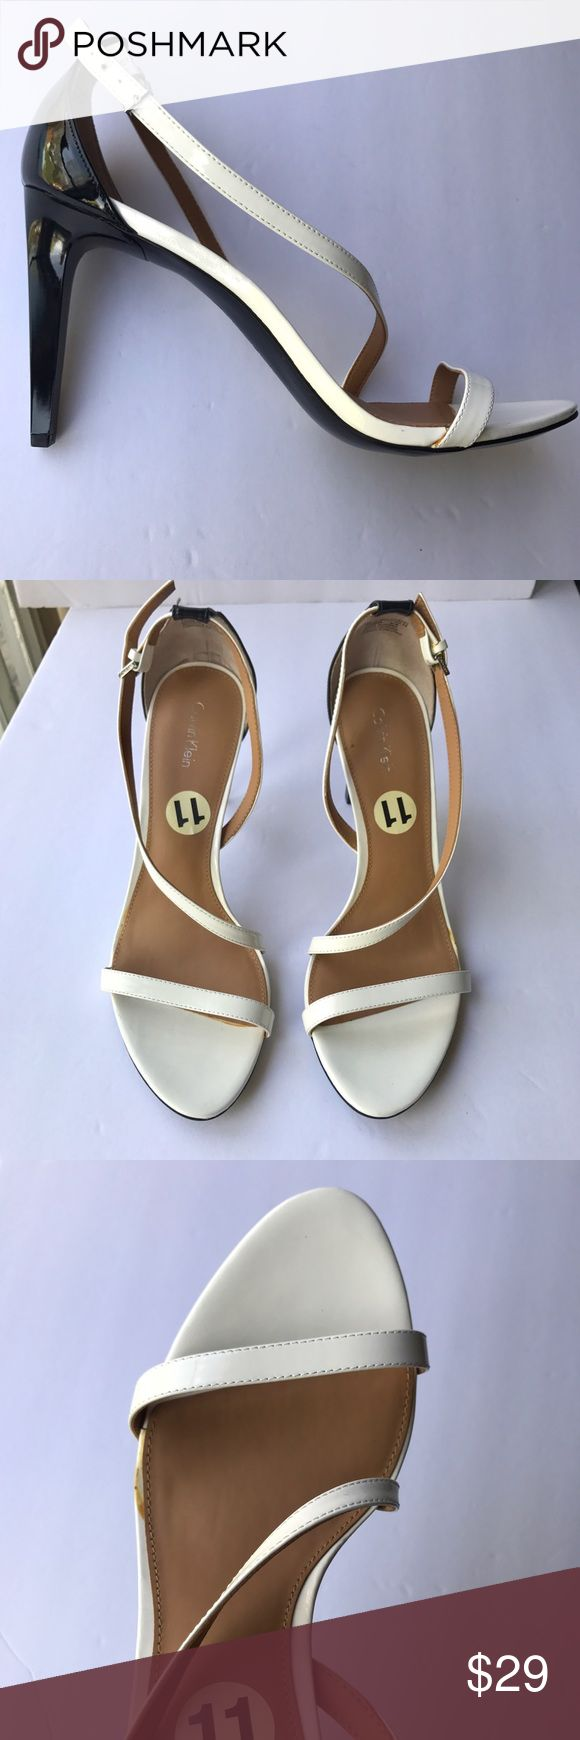 {calvin klein} black and white strappy heels Gorgeous two tone heels with lovely straps on upper. Stylish and like new! Adjustable at the ankle. Can be dressed up or down for an elegant look. Calvin Klein Shoes Heels